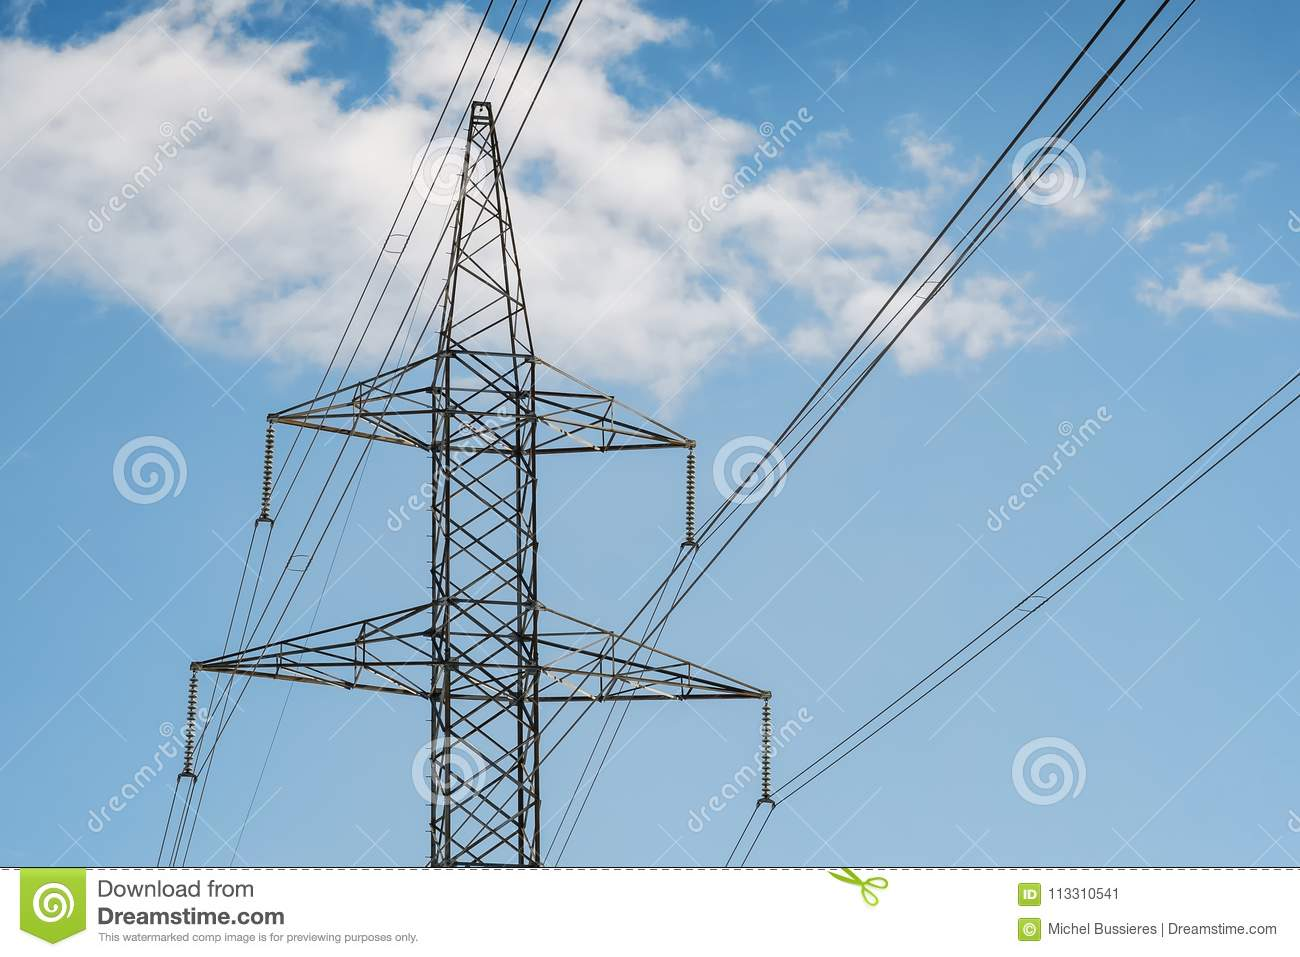 Electrical Tower Pylon And Wires On A Blue Sky With Clouds. Stock ...